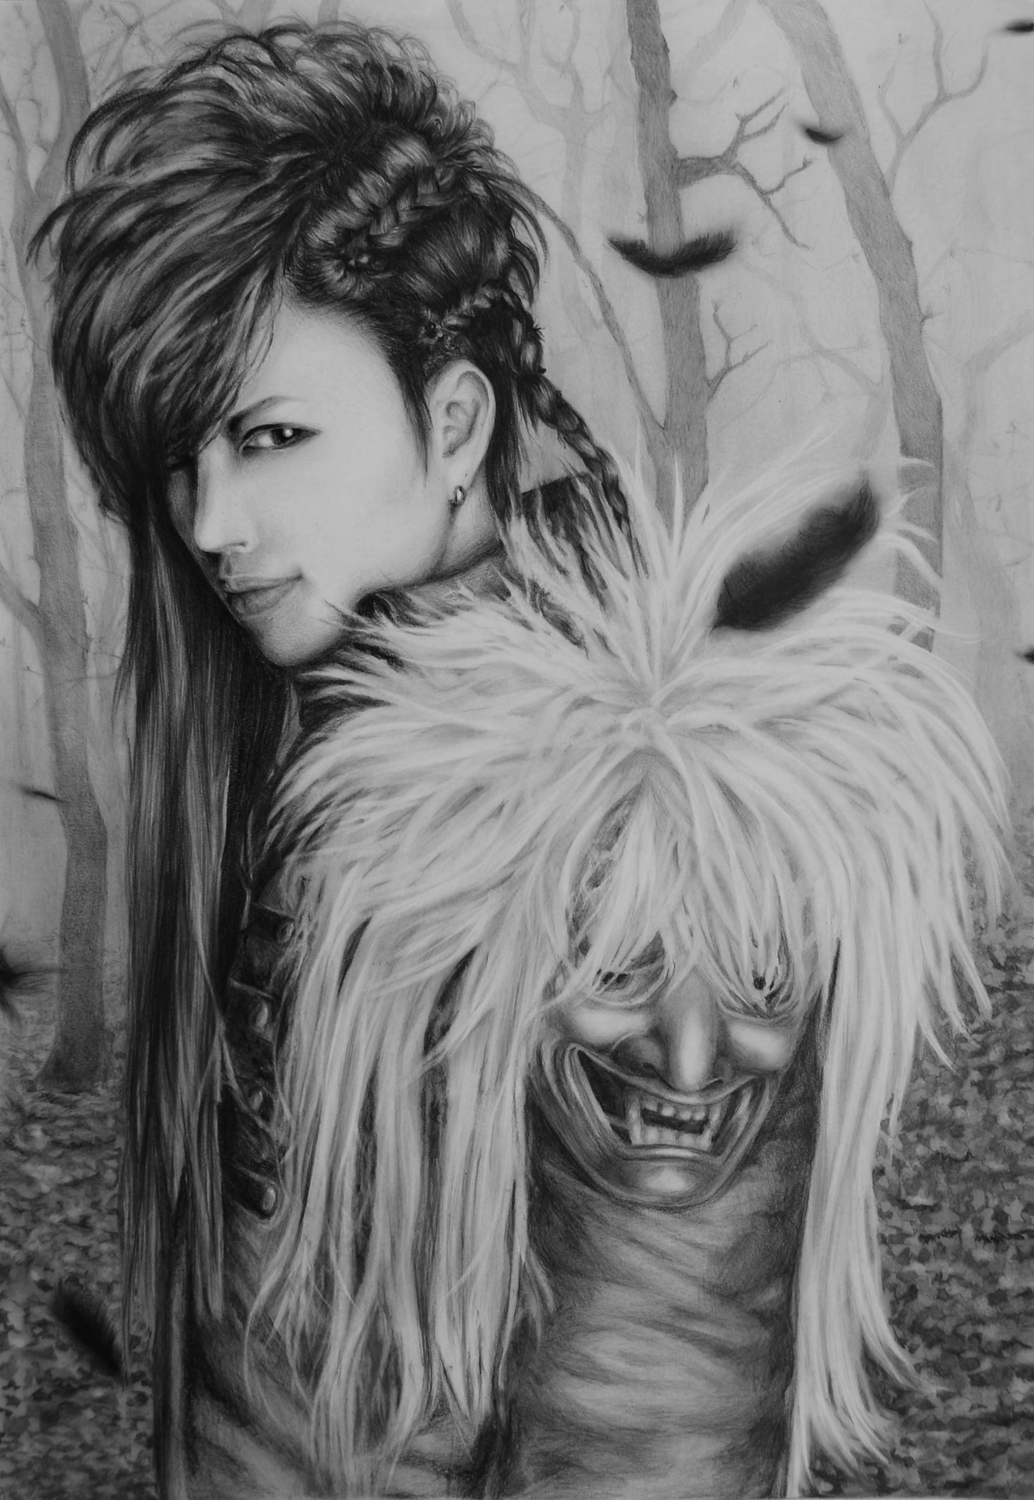 GACKT BEST OF THE BEST THE BLACK FEATHER by DarkCrea